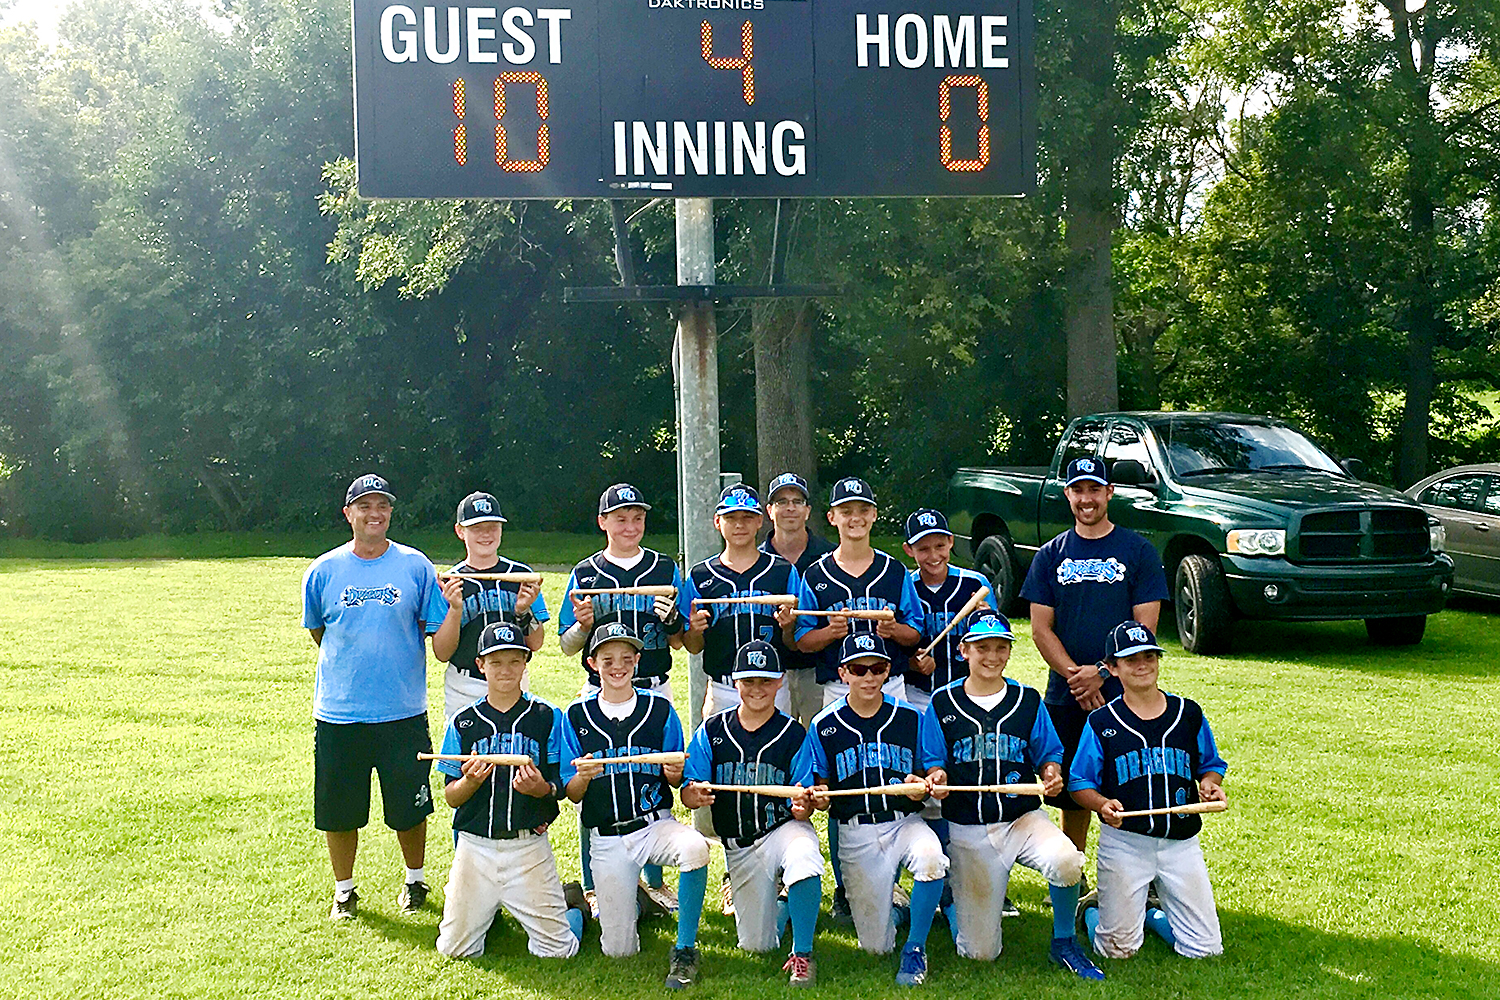 12U West Chester Dragons NL Baseball Team wins the 8th Annual Danielle DeLarso Community Benefit Tournament